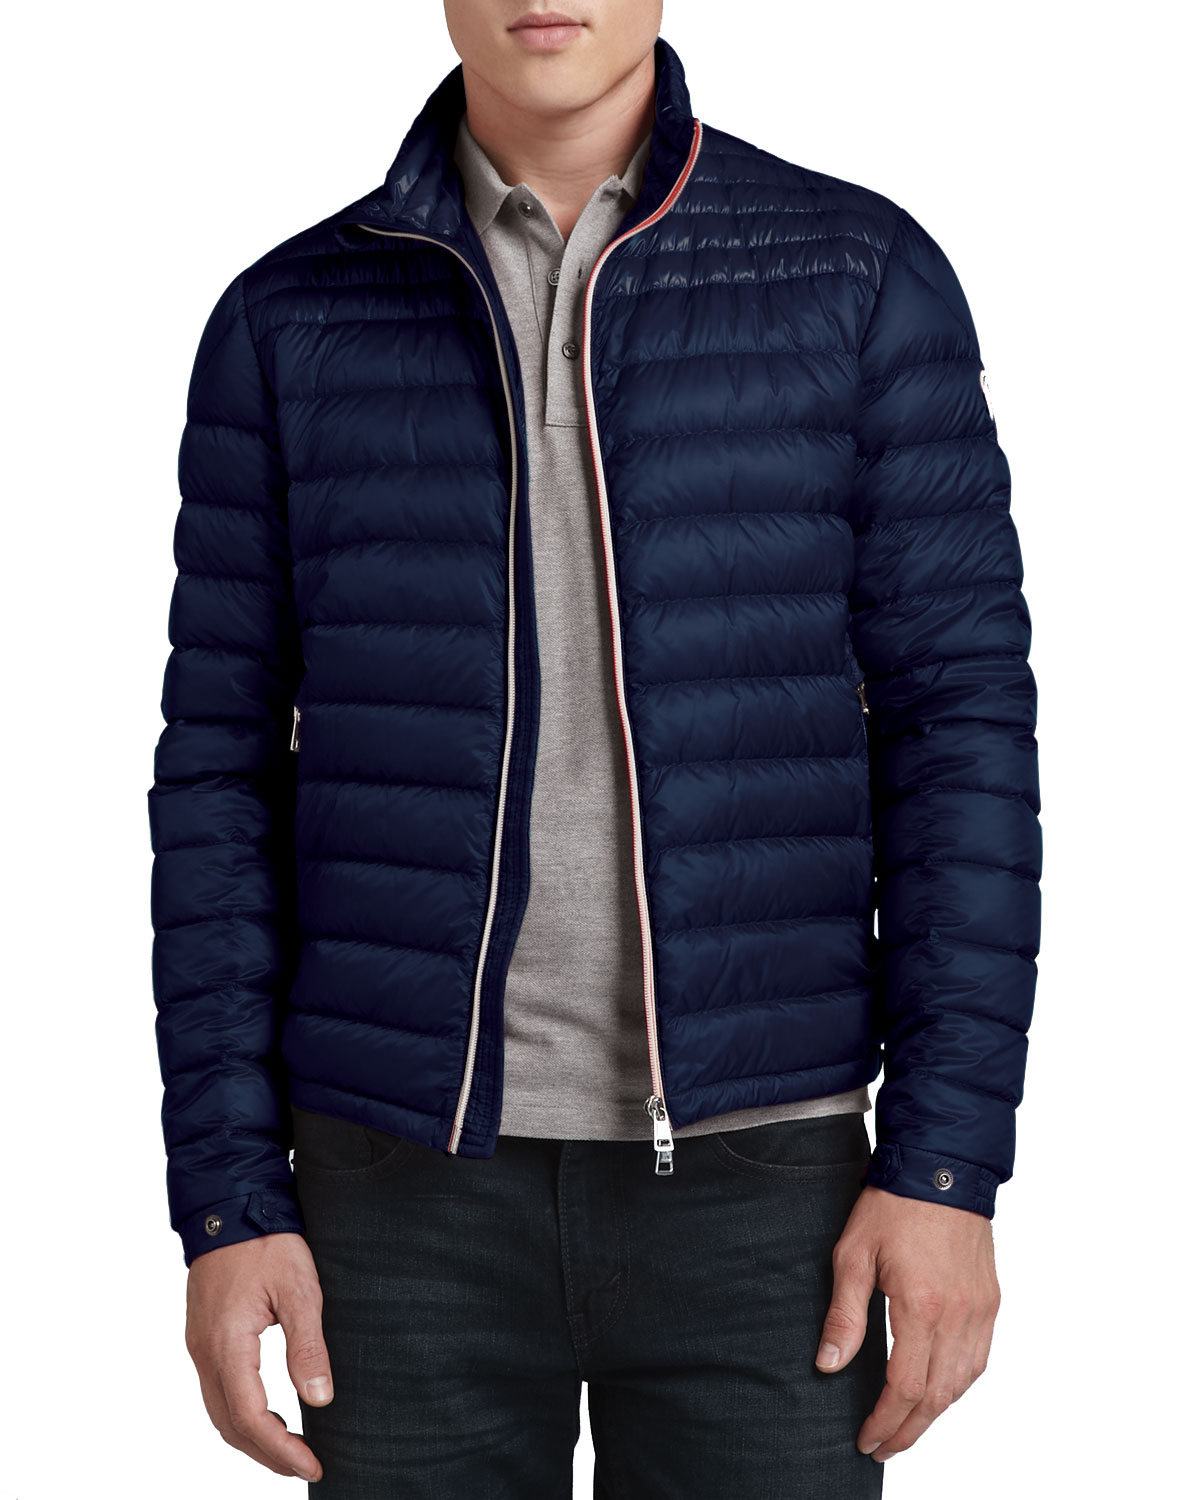 lyst moncler daniel lightweight puffer jacket dark navy in blue for men. Black Bedroom Furniture Sets. Home Design Ideas